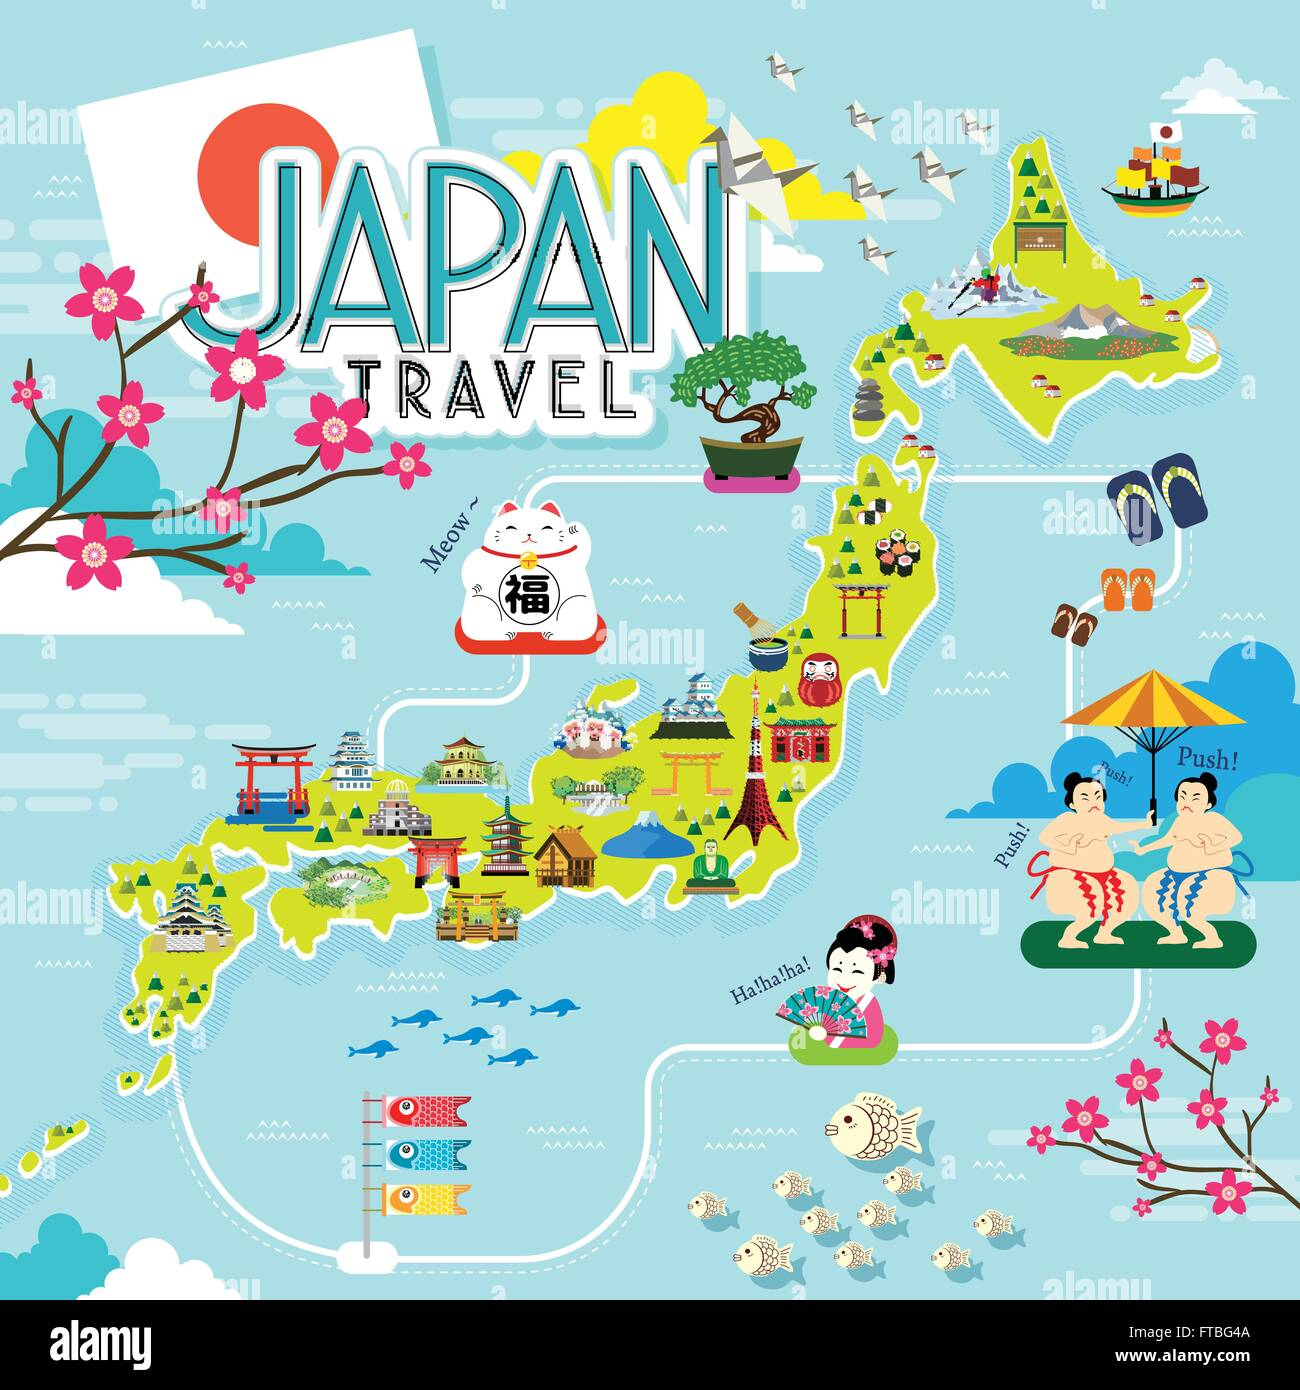 japan travel map with lovely famous attractions. japan travel map with lovely famous attractions stock vector art